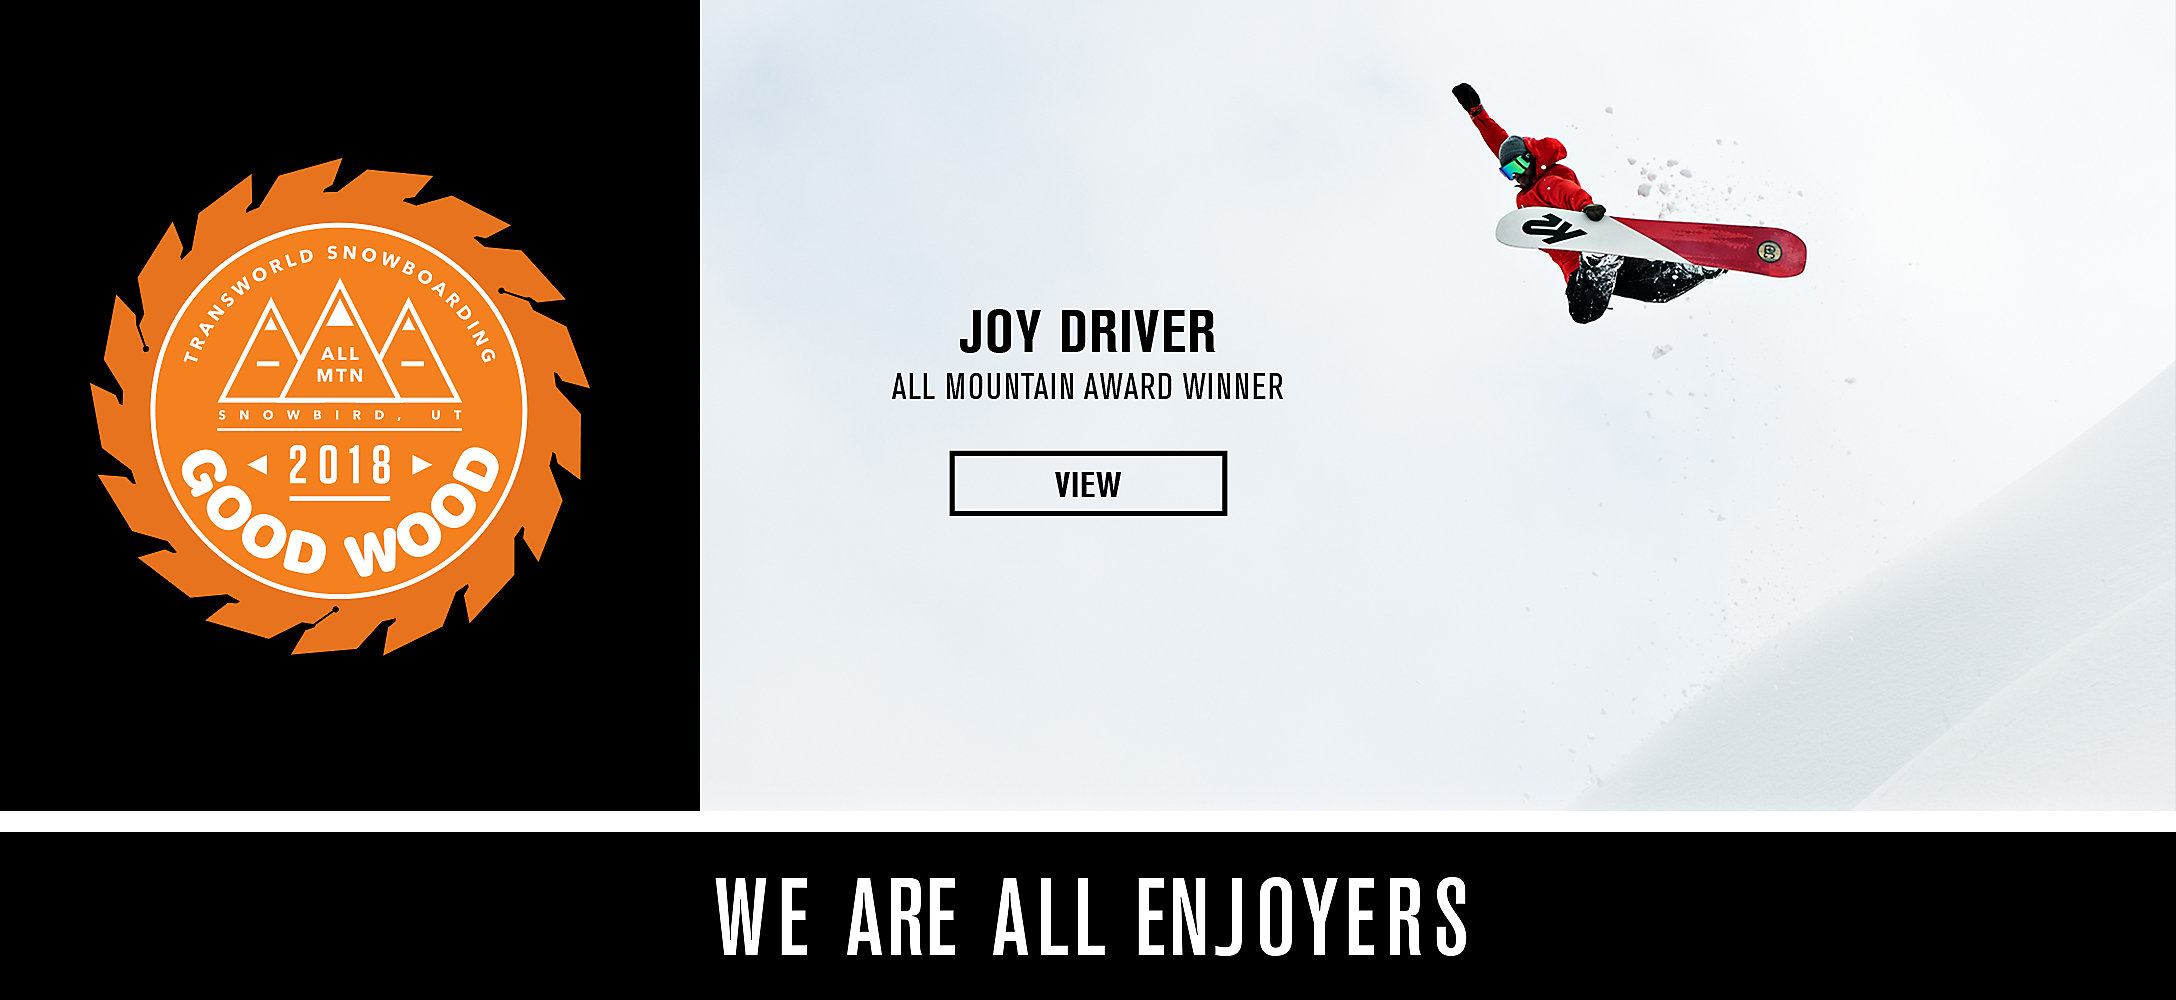 Award-Winning Joy Driver